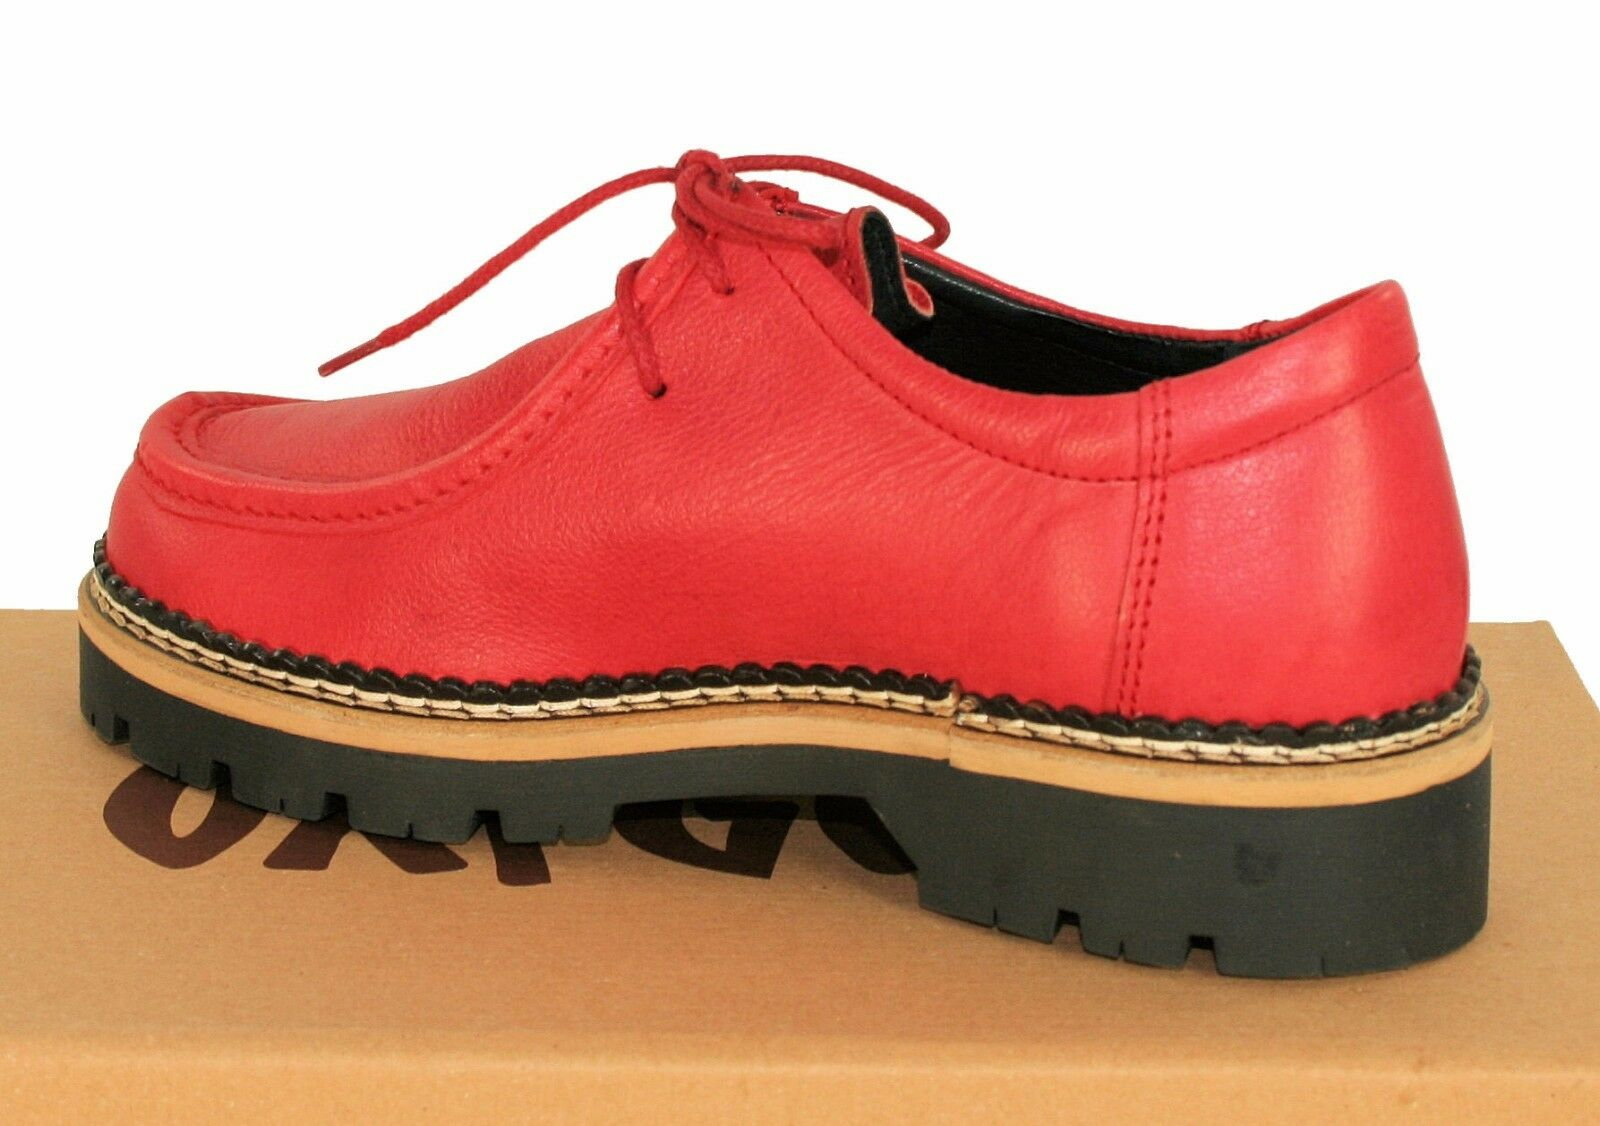 Oxygène Chunky Wallabee Lacets Chaussure Mayence rouge rouge rouge taille 36 To 41 9a6cbf